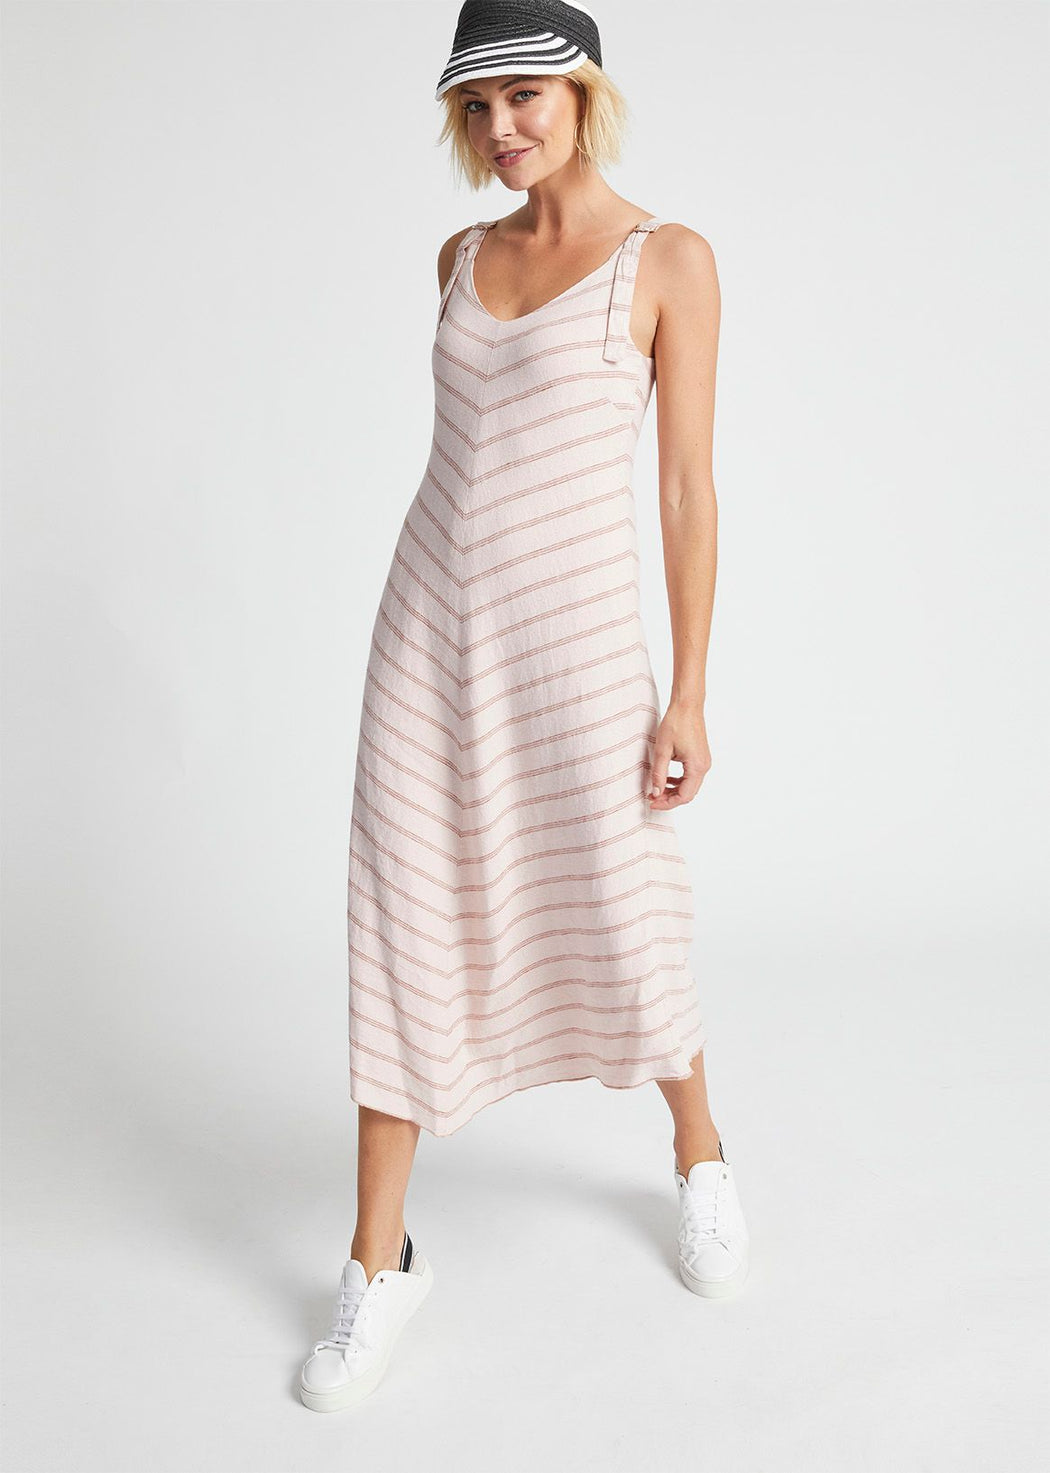 Madly Sweetly Fine Linen Sun Dress | Shop at Wallace and Gibbs NZ